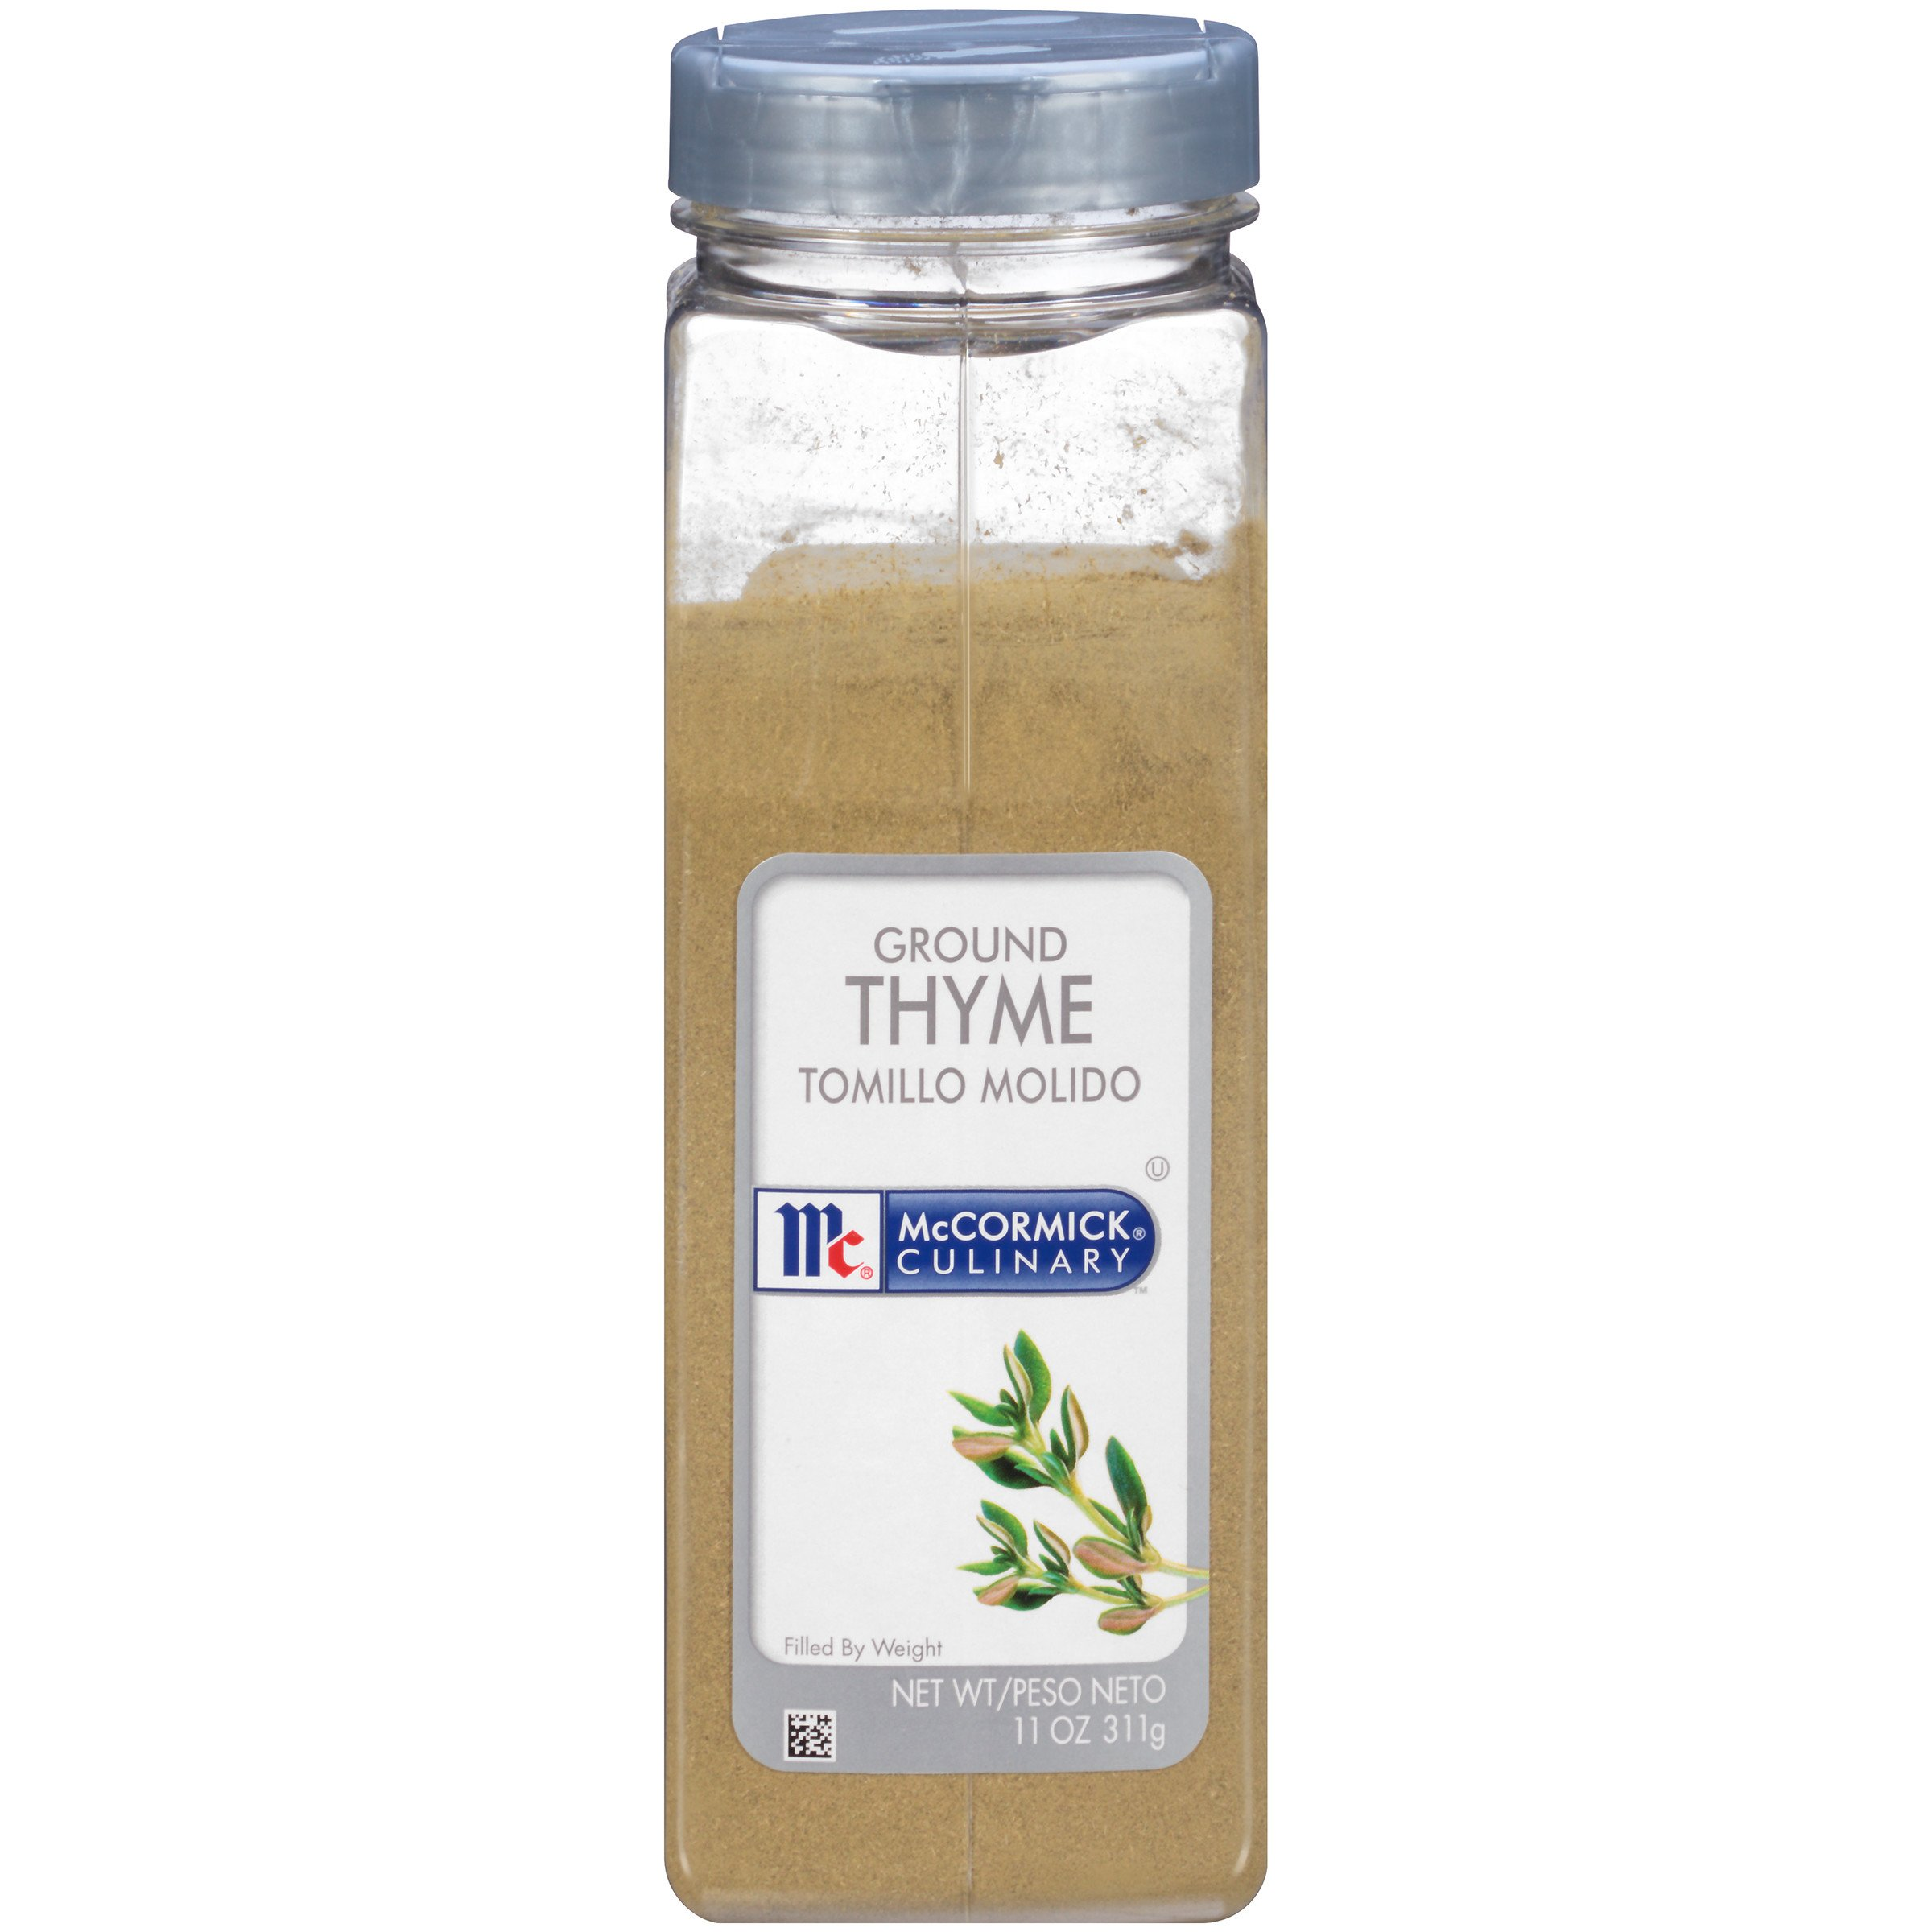 McCormick Culinary Ground Thyme, 11 oz